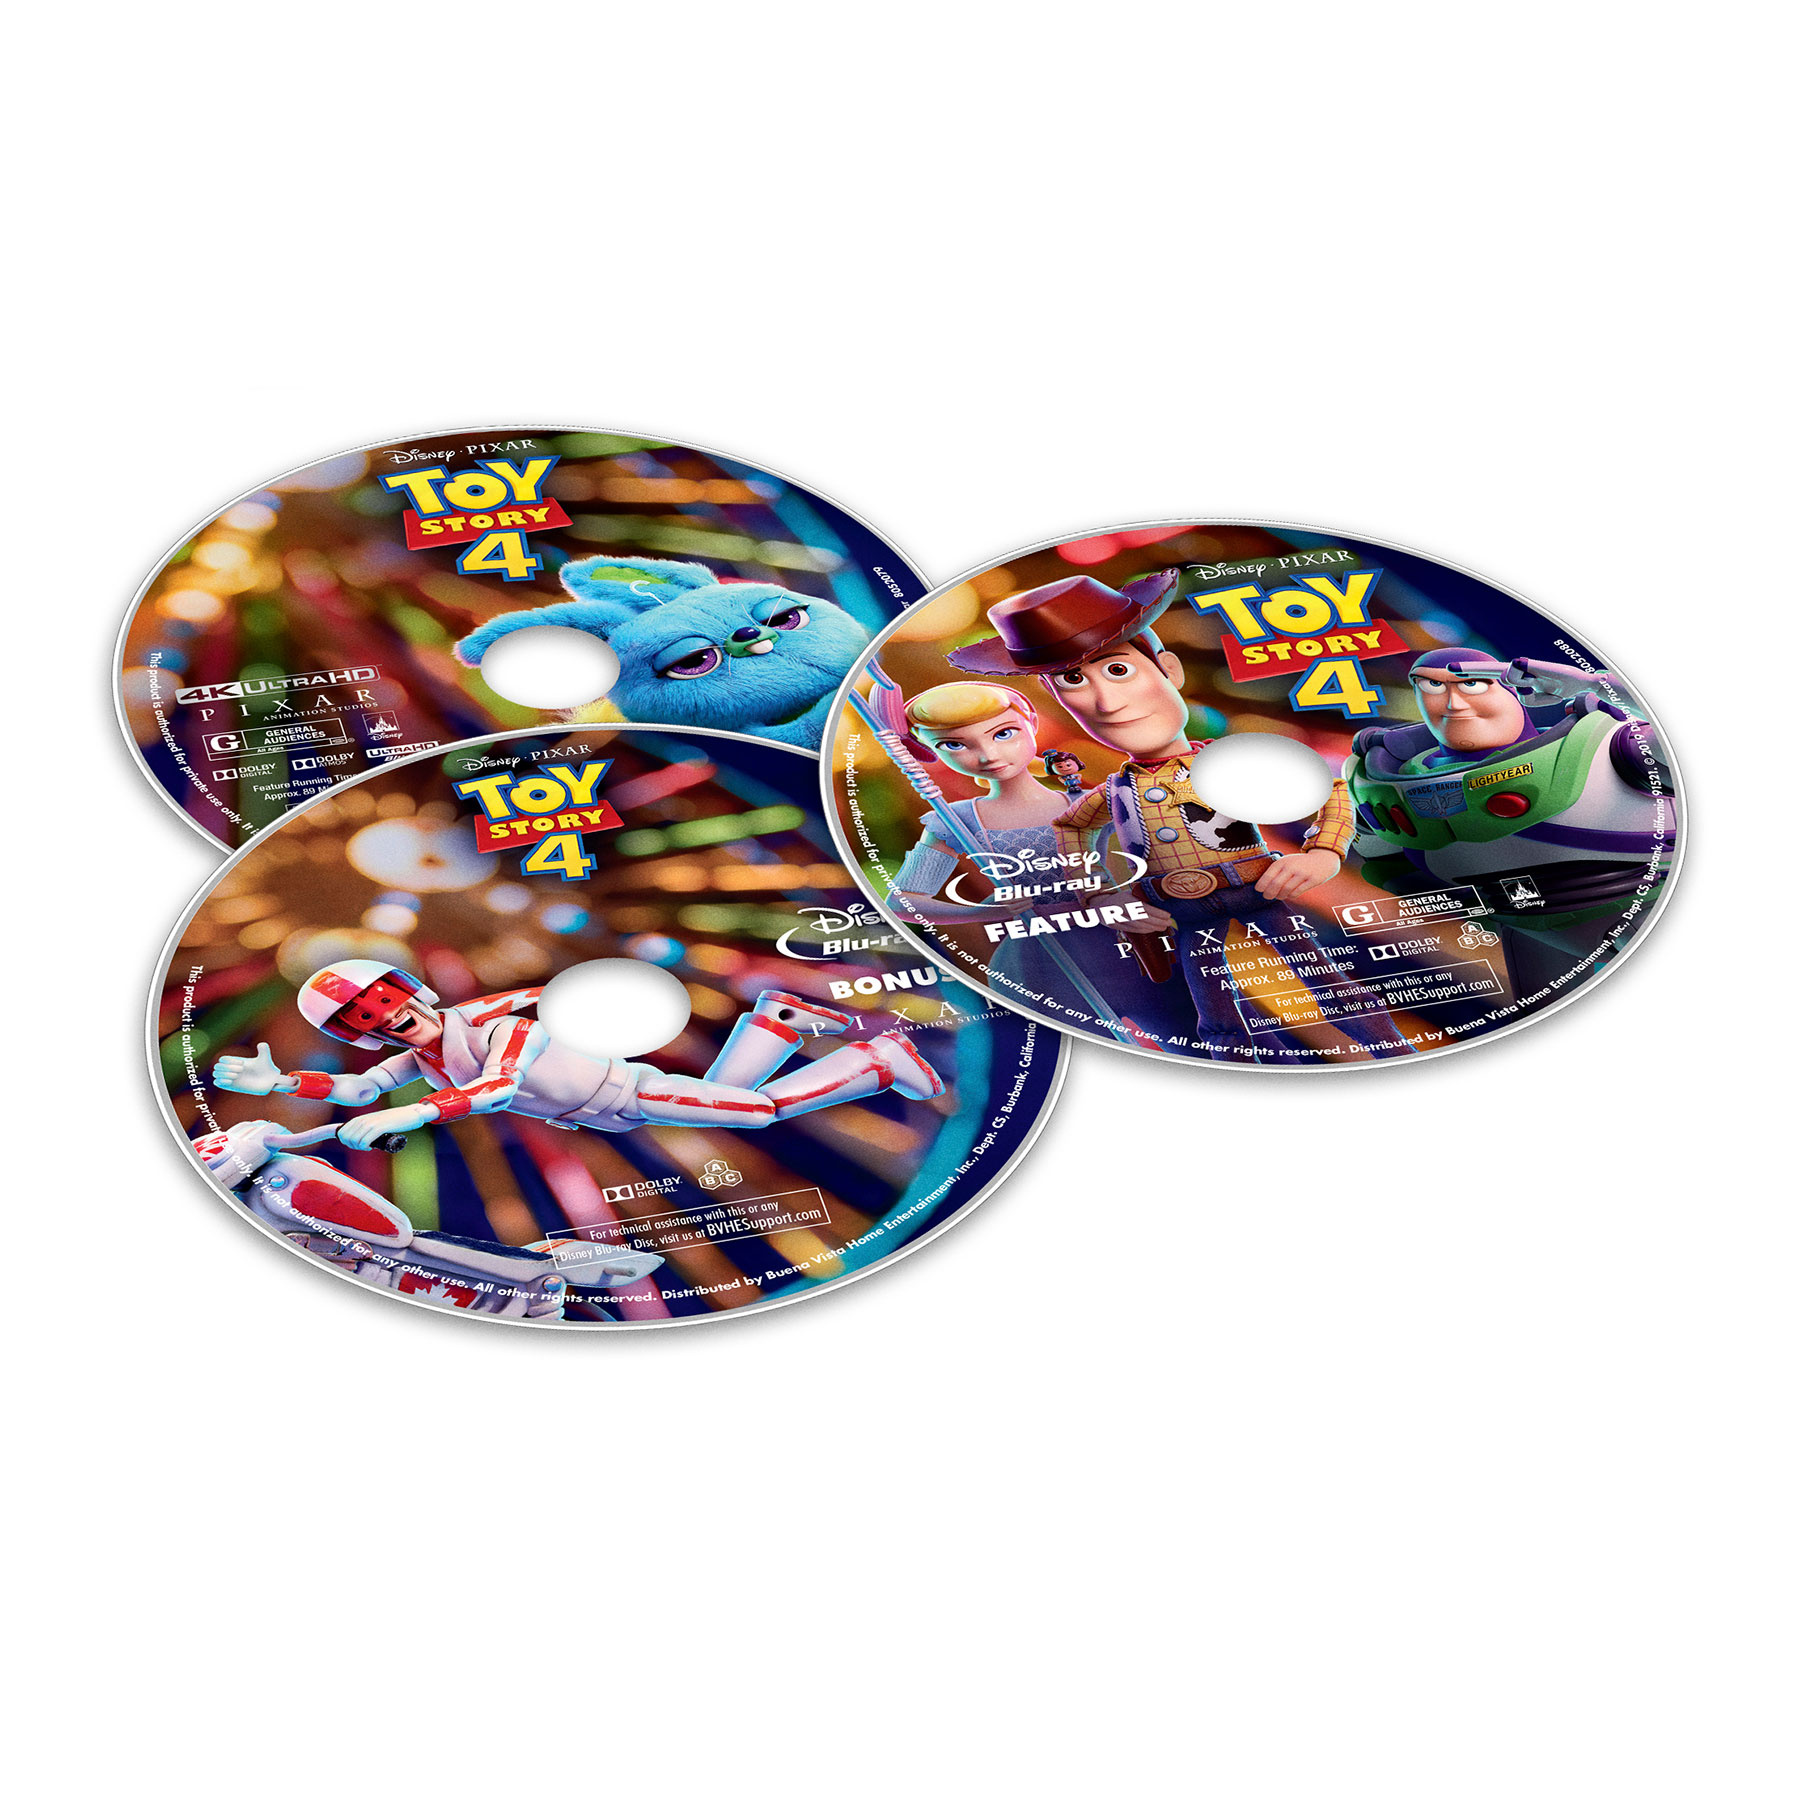 Toy Story 4 DVD Labels